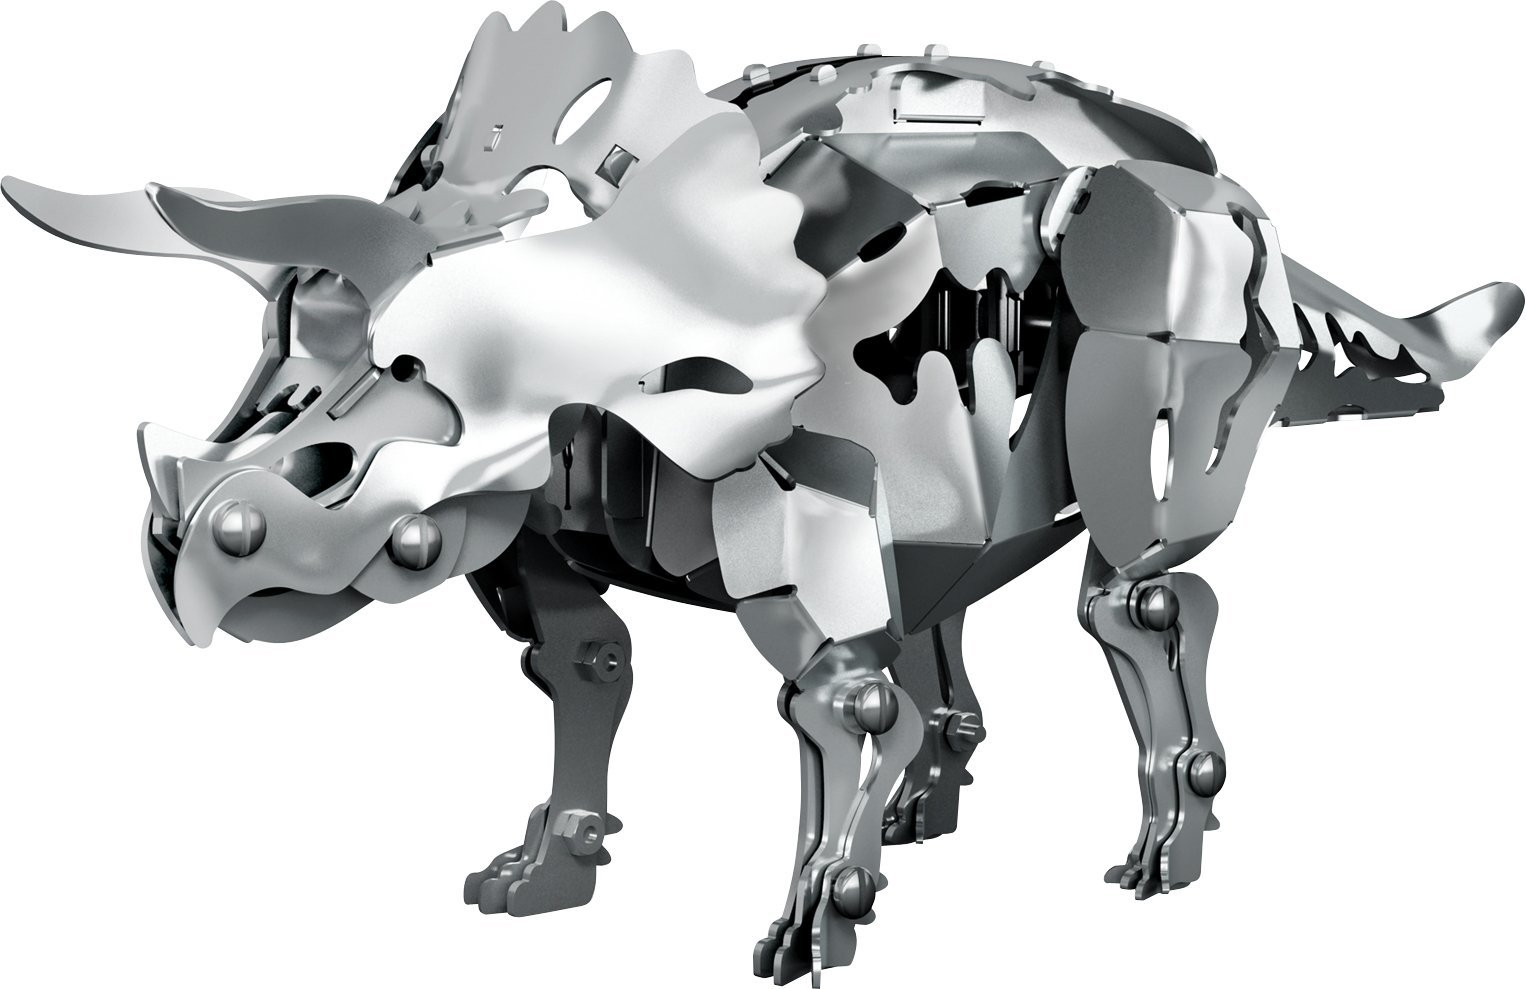 Amazon.com  Elenco OWI Triceratops Aluminum Kit - MAIN